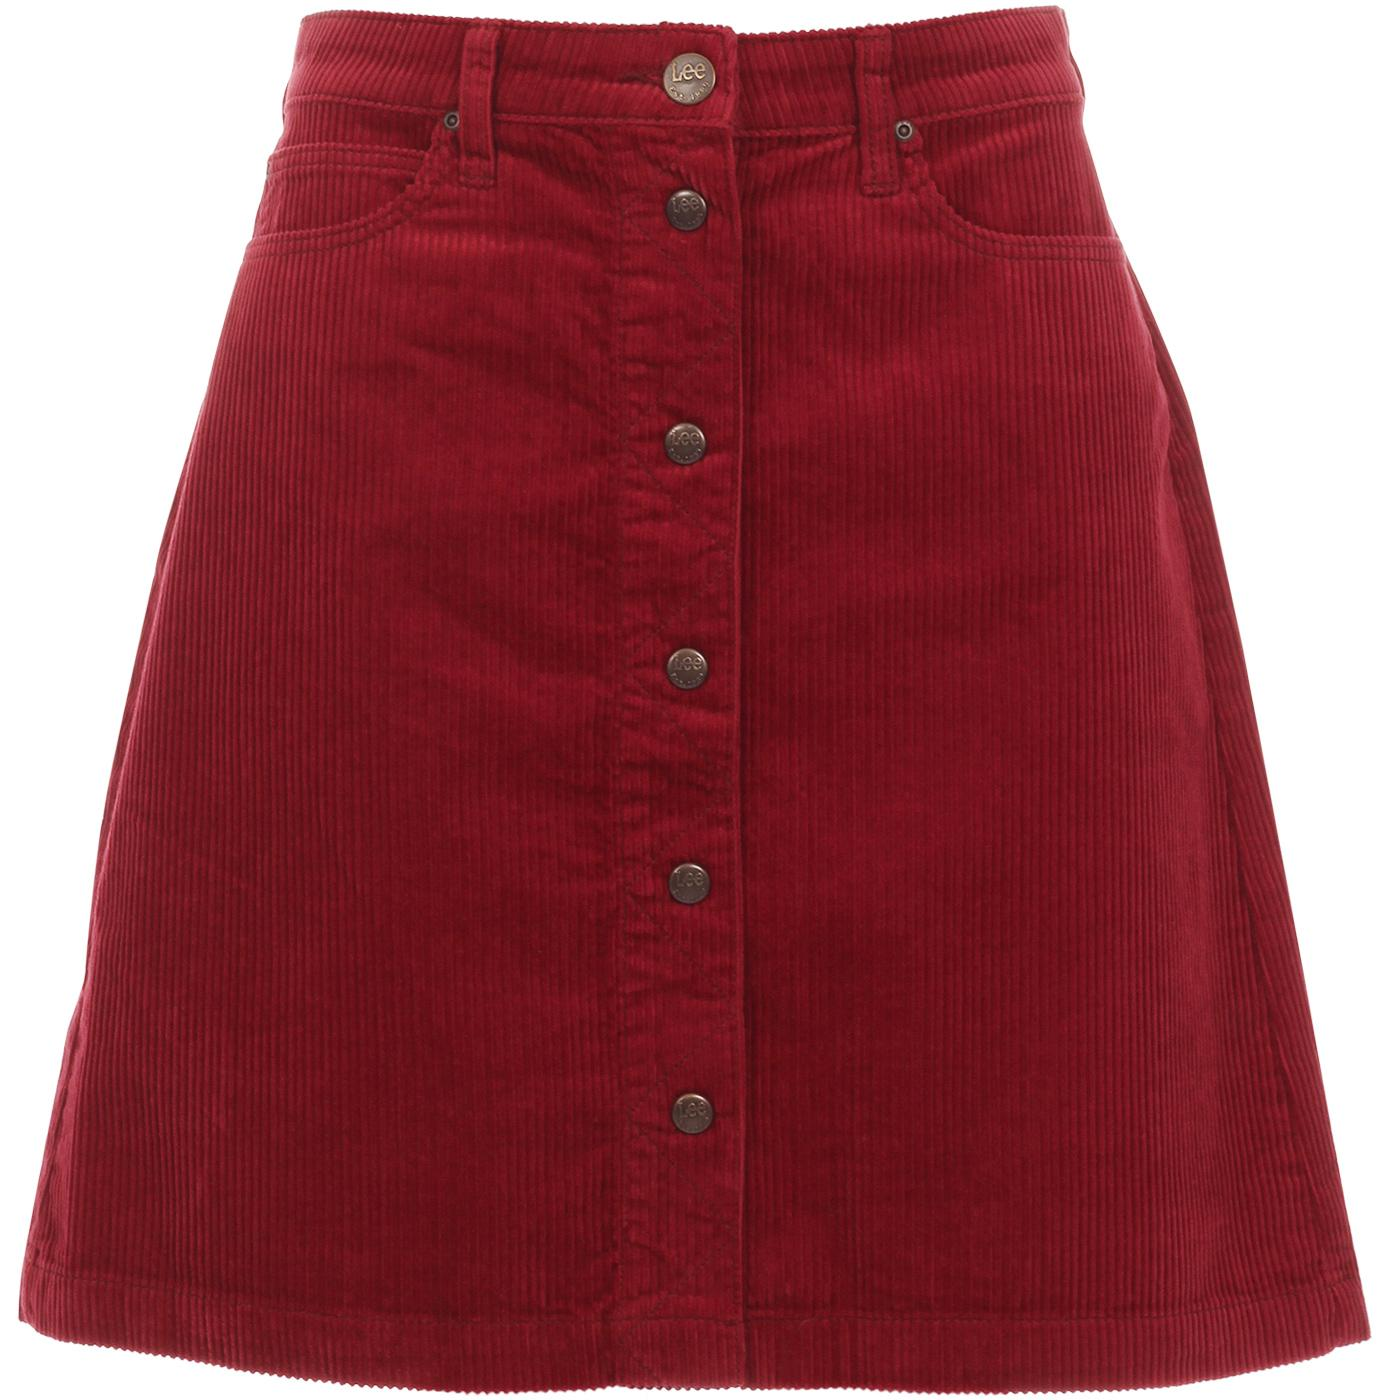 LEE JEANS Womens Retro Cord A-Line Mini Skirt (BR)